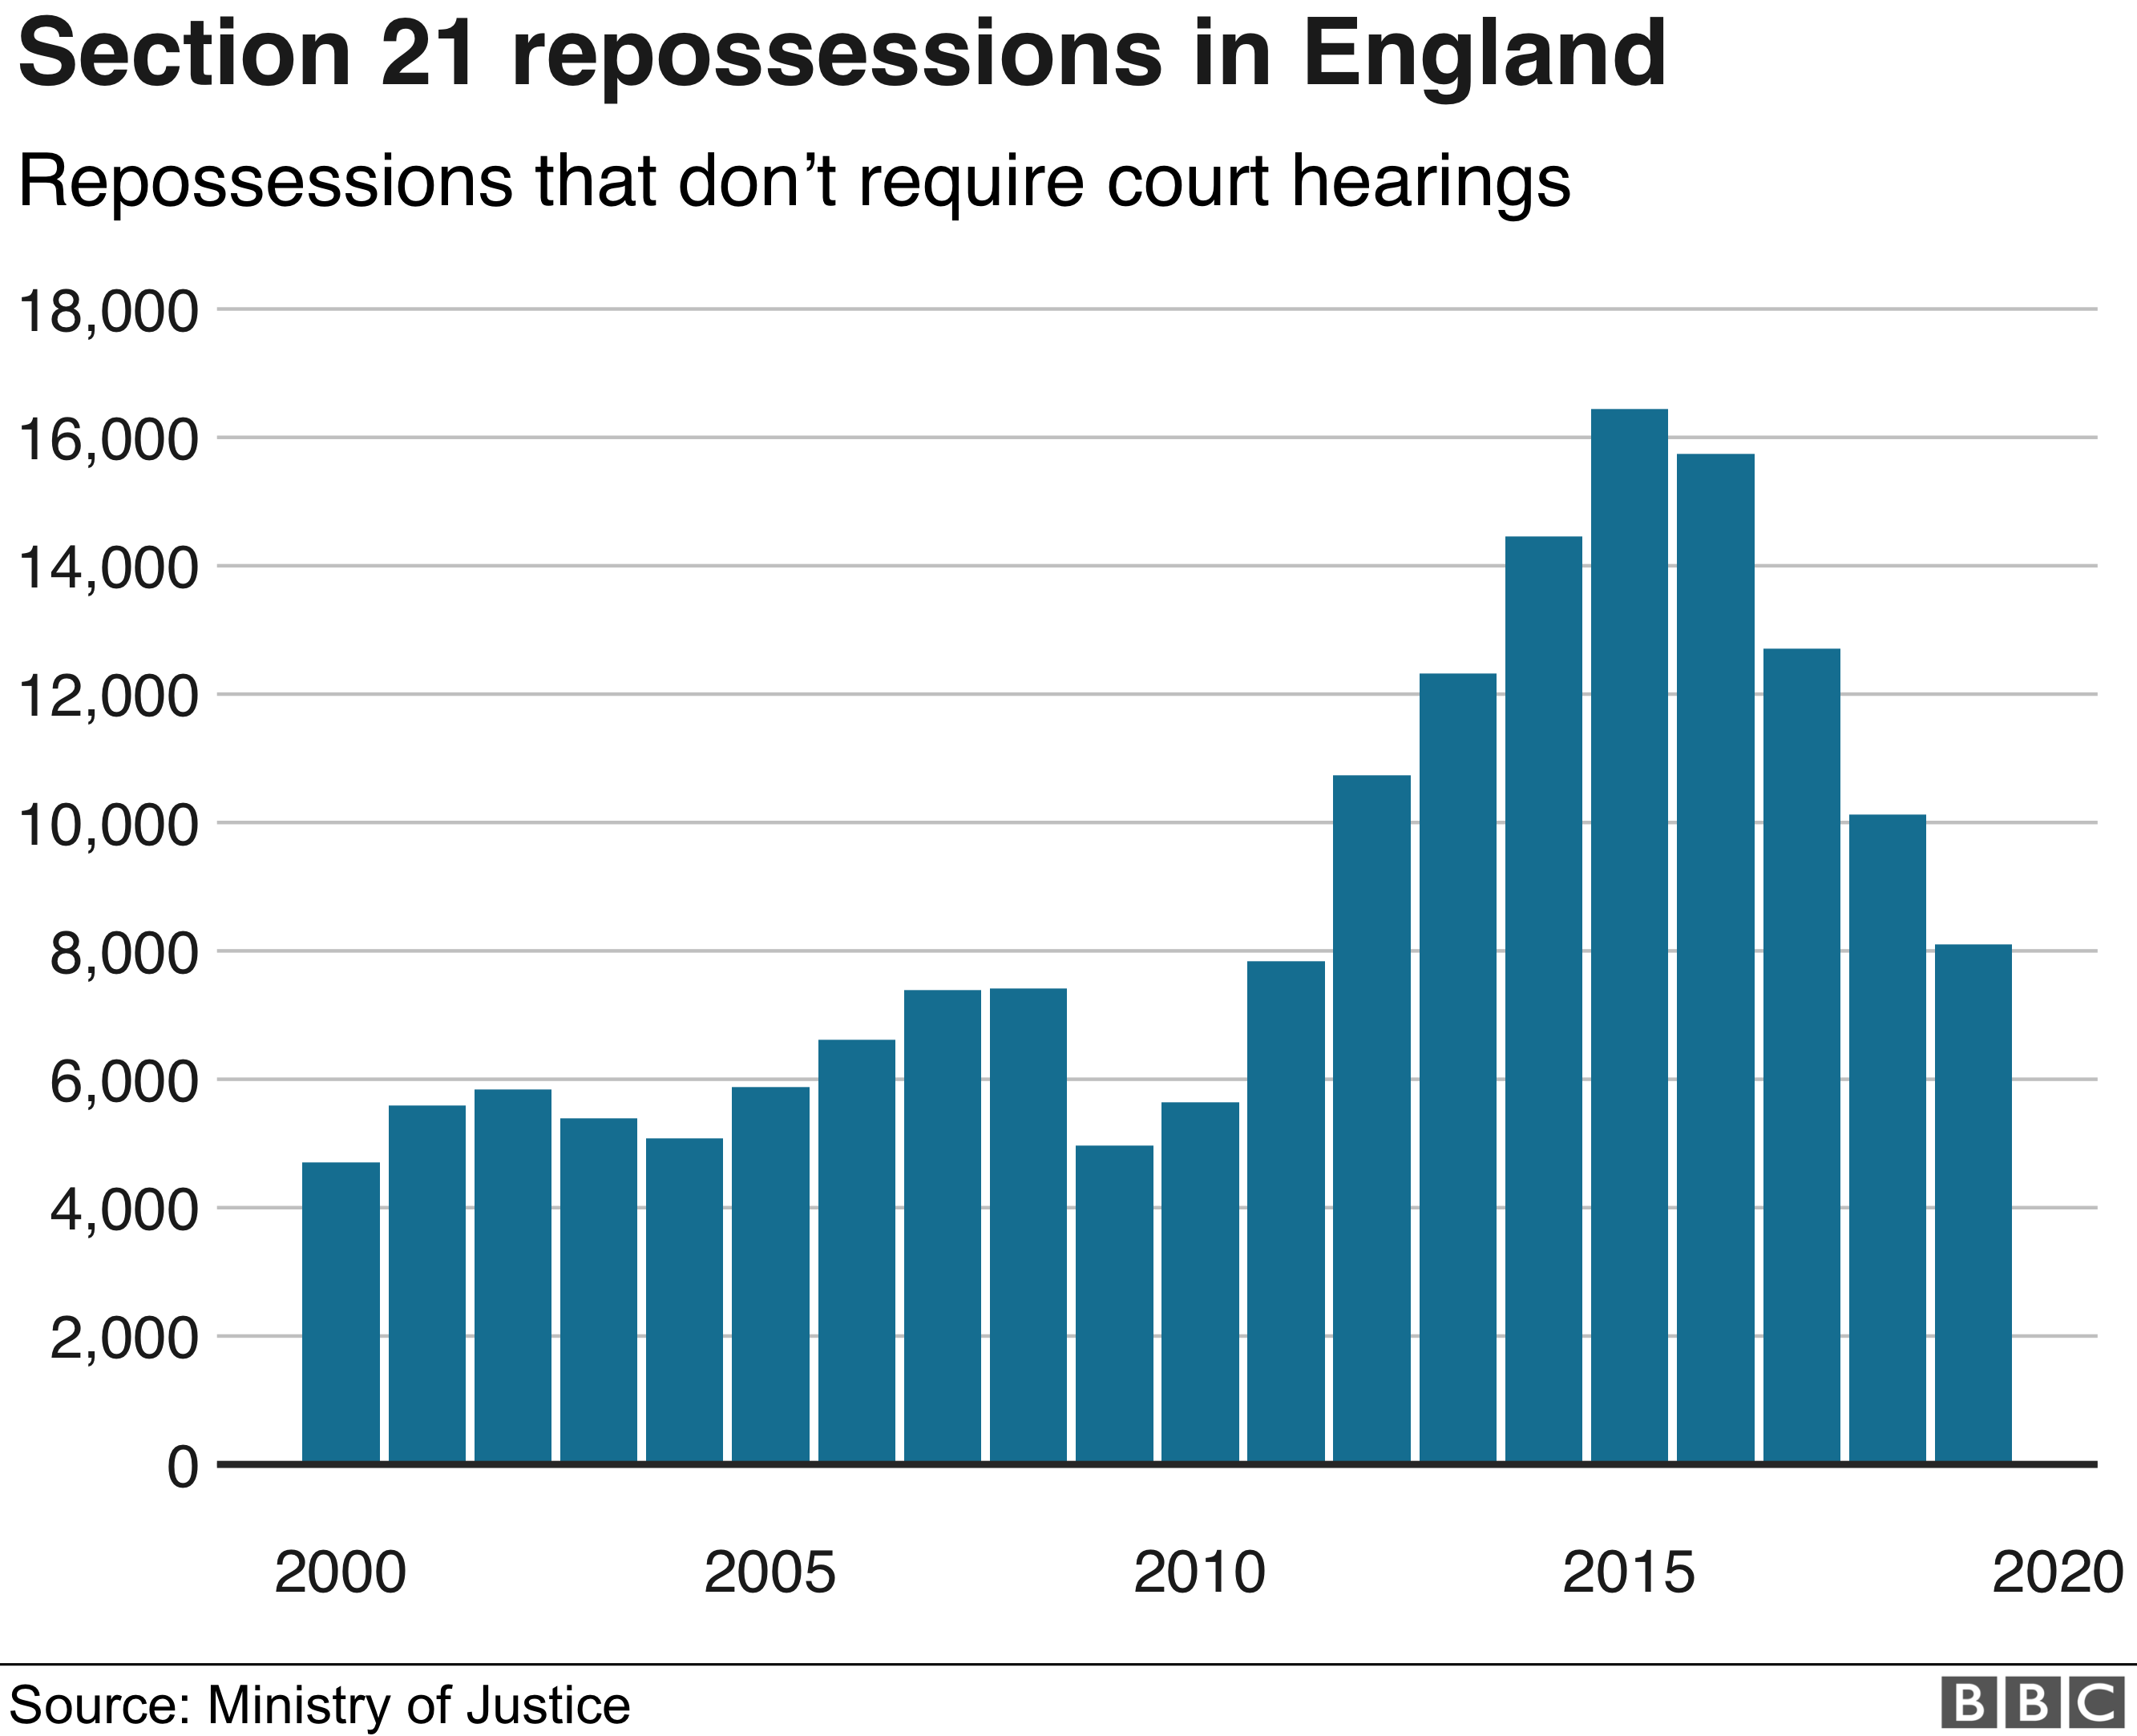 Chart on section 21 repossessions